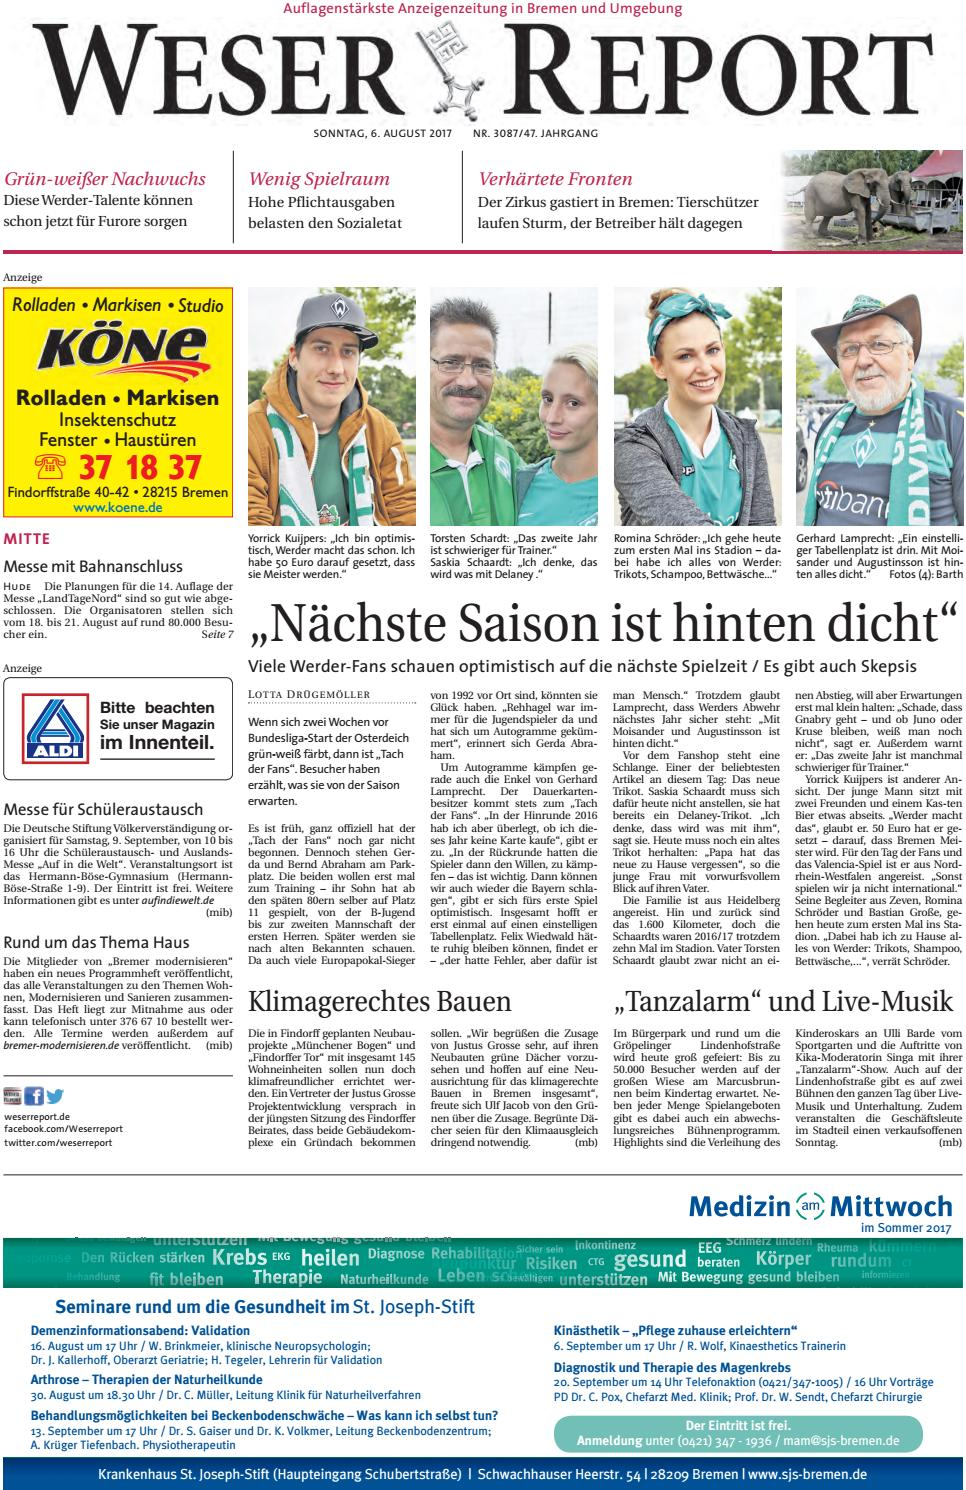 Weser Report Mitte vom 06.08.2017 by KPS